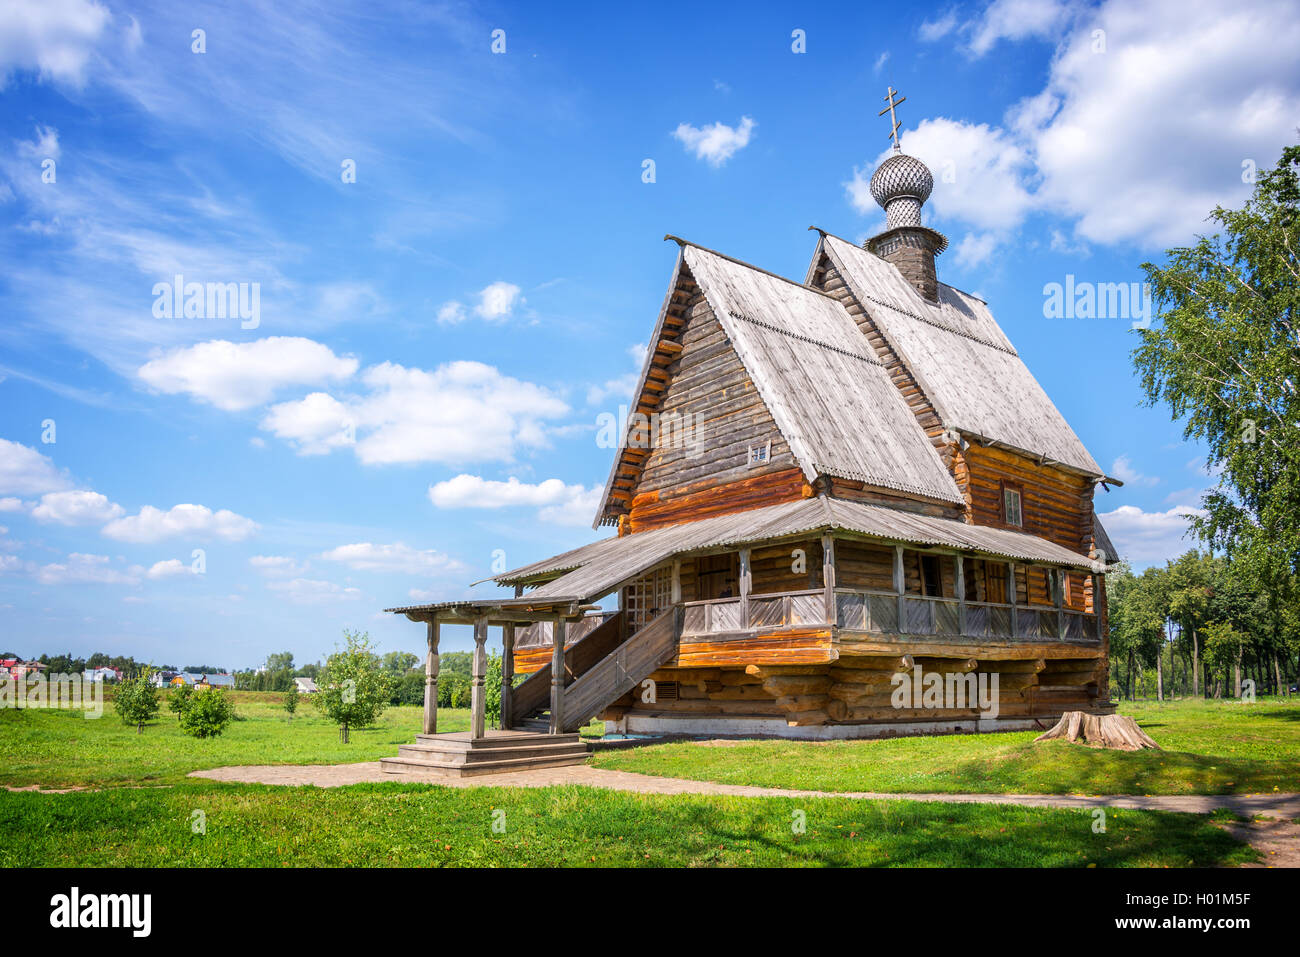 Wooden church of St. Nicholas in Suzdal, Golden Ring, Russia - Stock Image